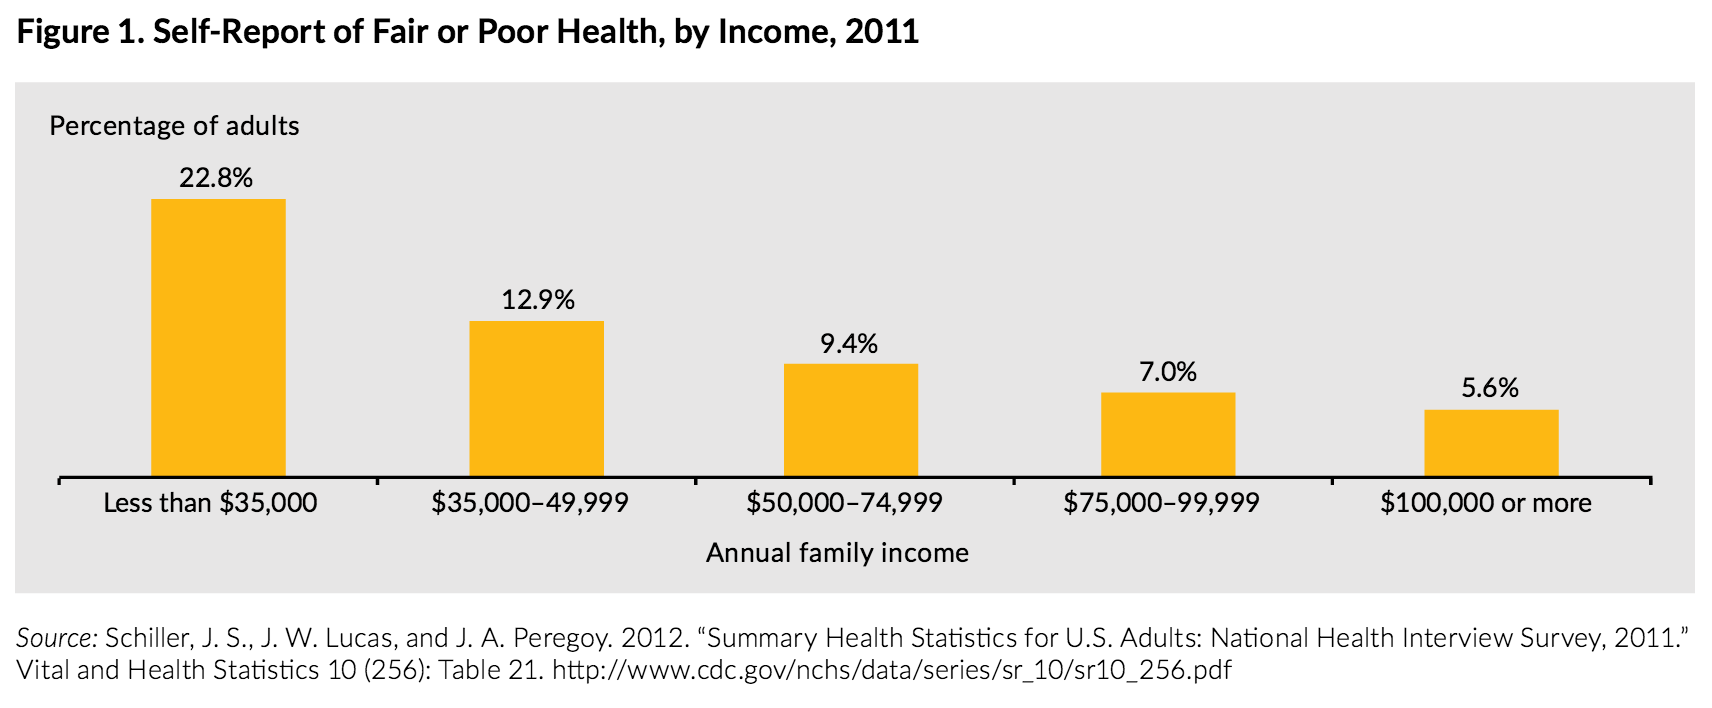 Source: http://www.urban.org/sites/default/files/alfresco/publication-pdfs/2000178-How-are-Income-and-Wealth-Linked-to-Health-and-Longevity.pdf